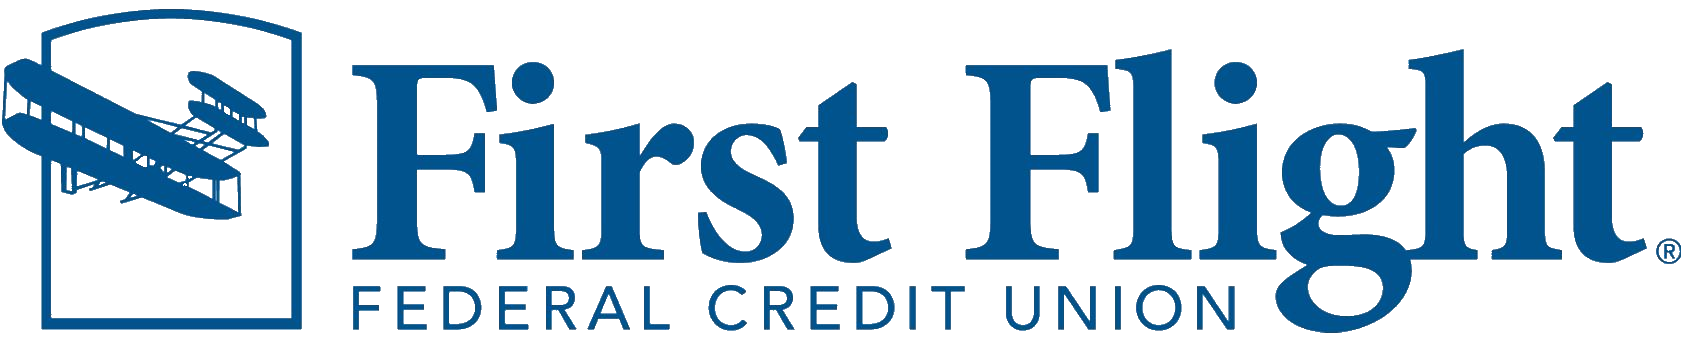 First flight federal credit union.png